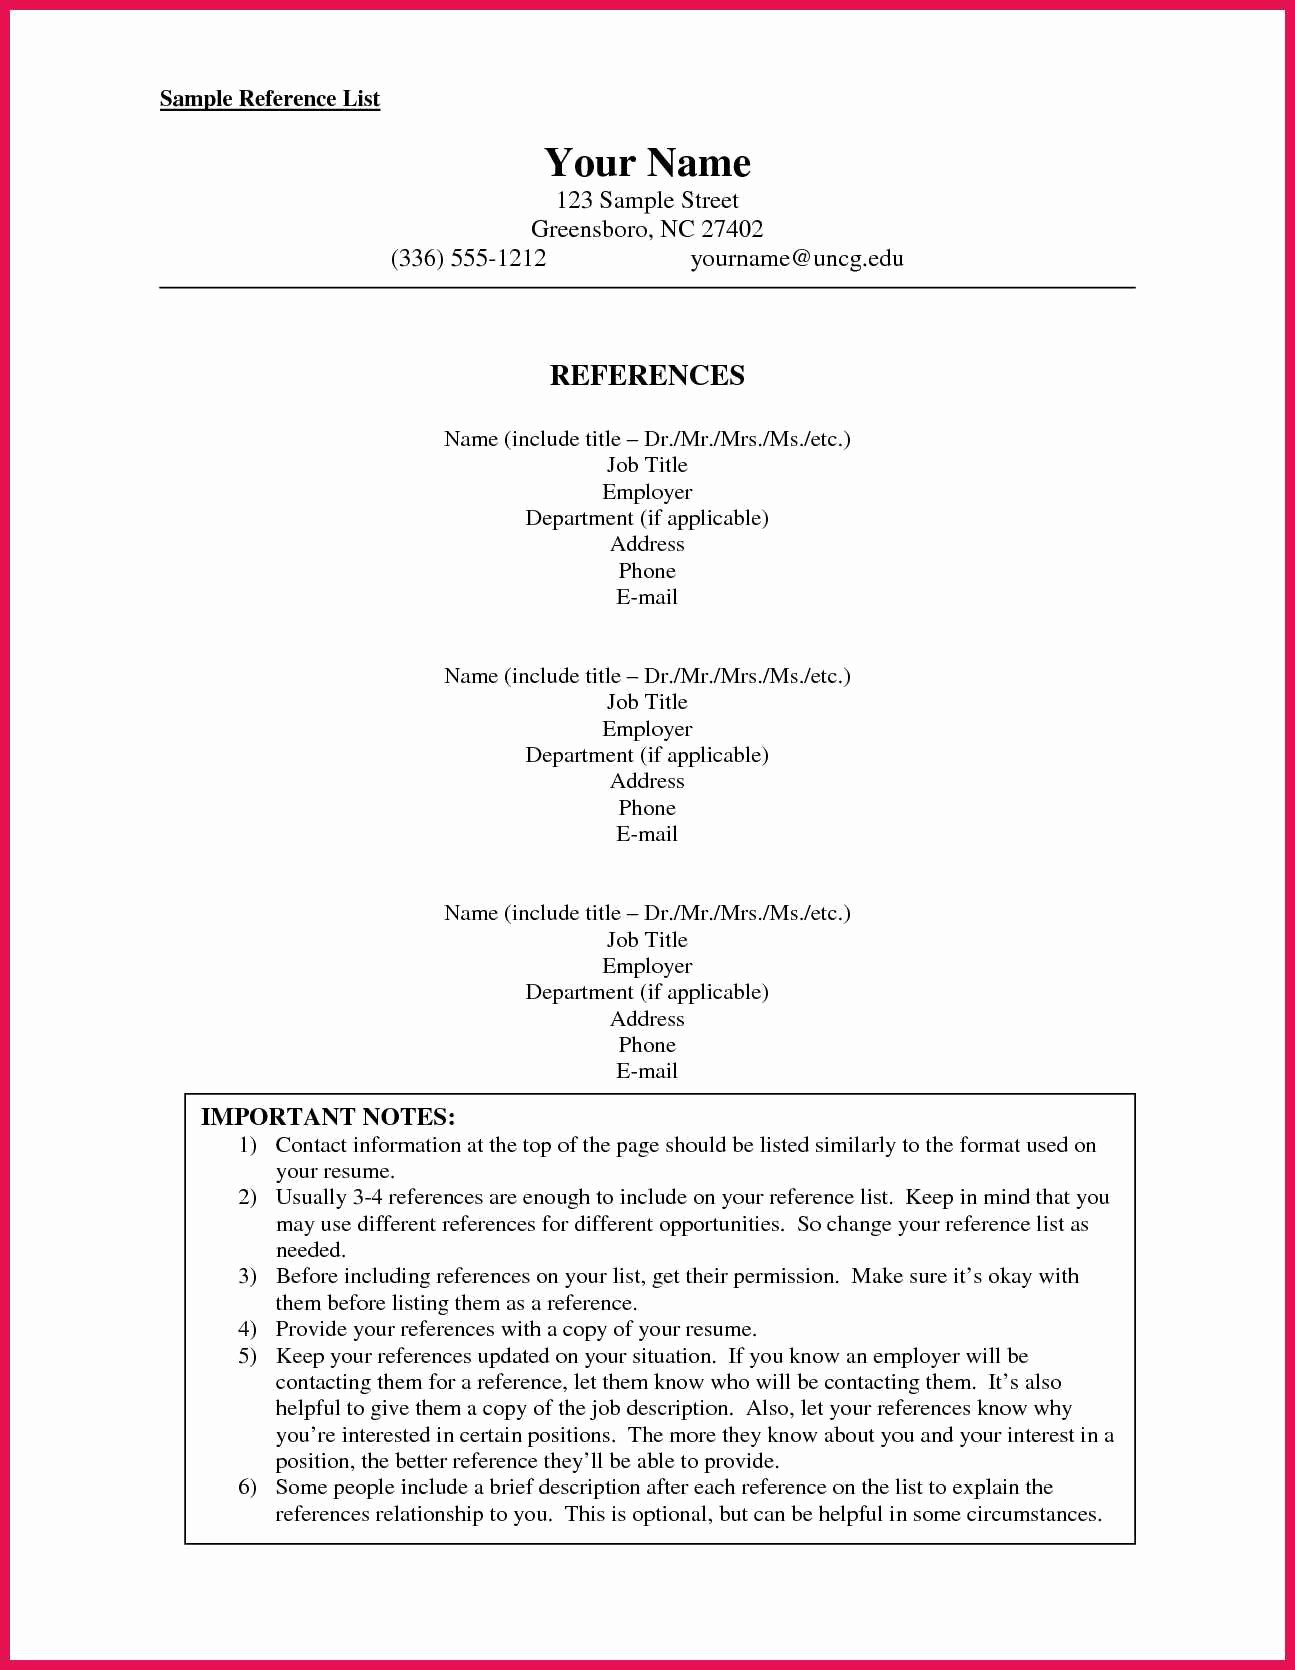 Sample Reference List for Jobs Lovely How to format A Reference List